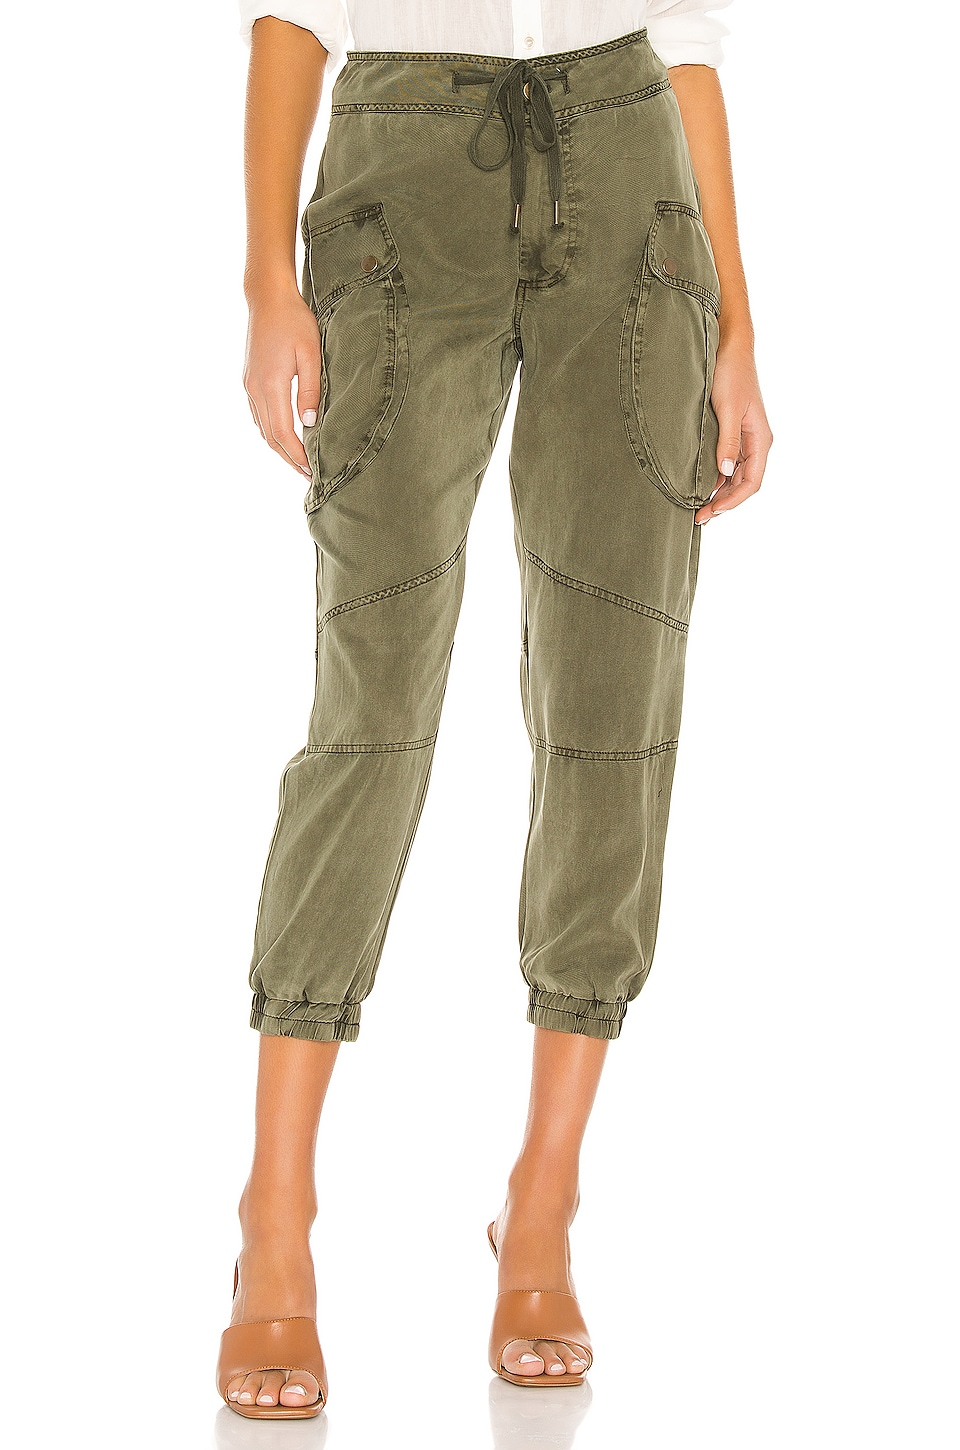 YFB CLOTHING Clyde Cargo Pant in Pine Pigment